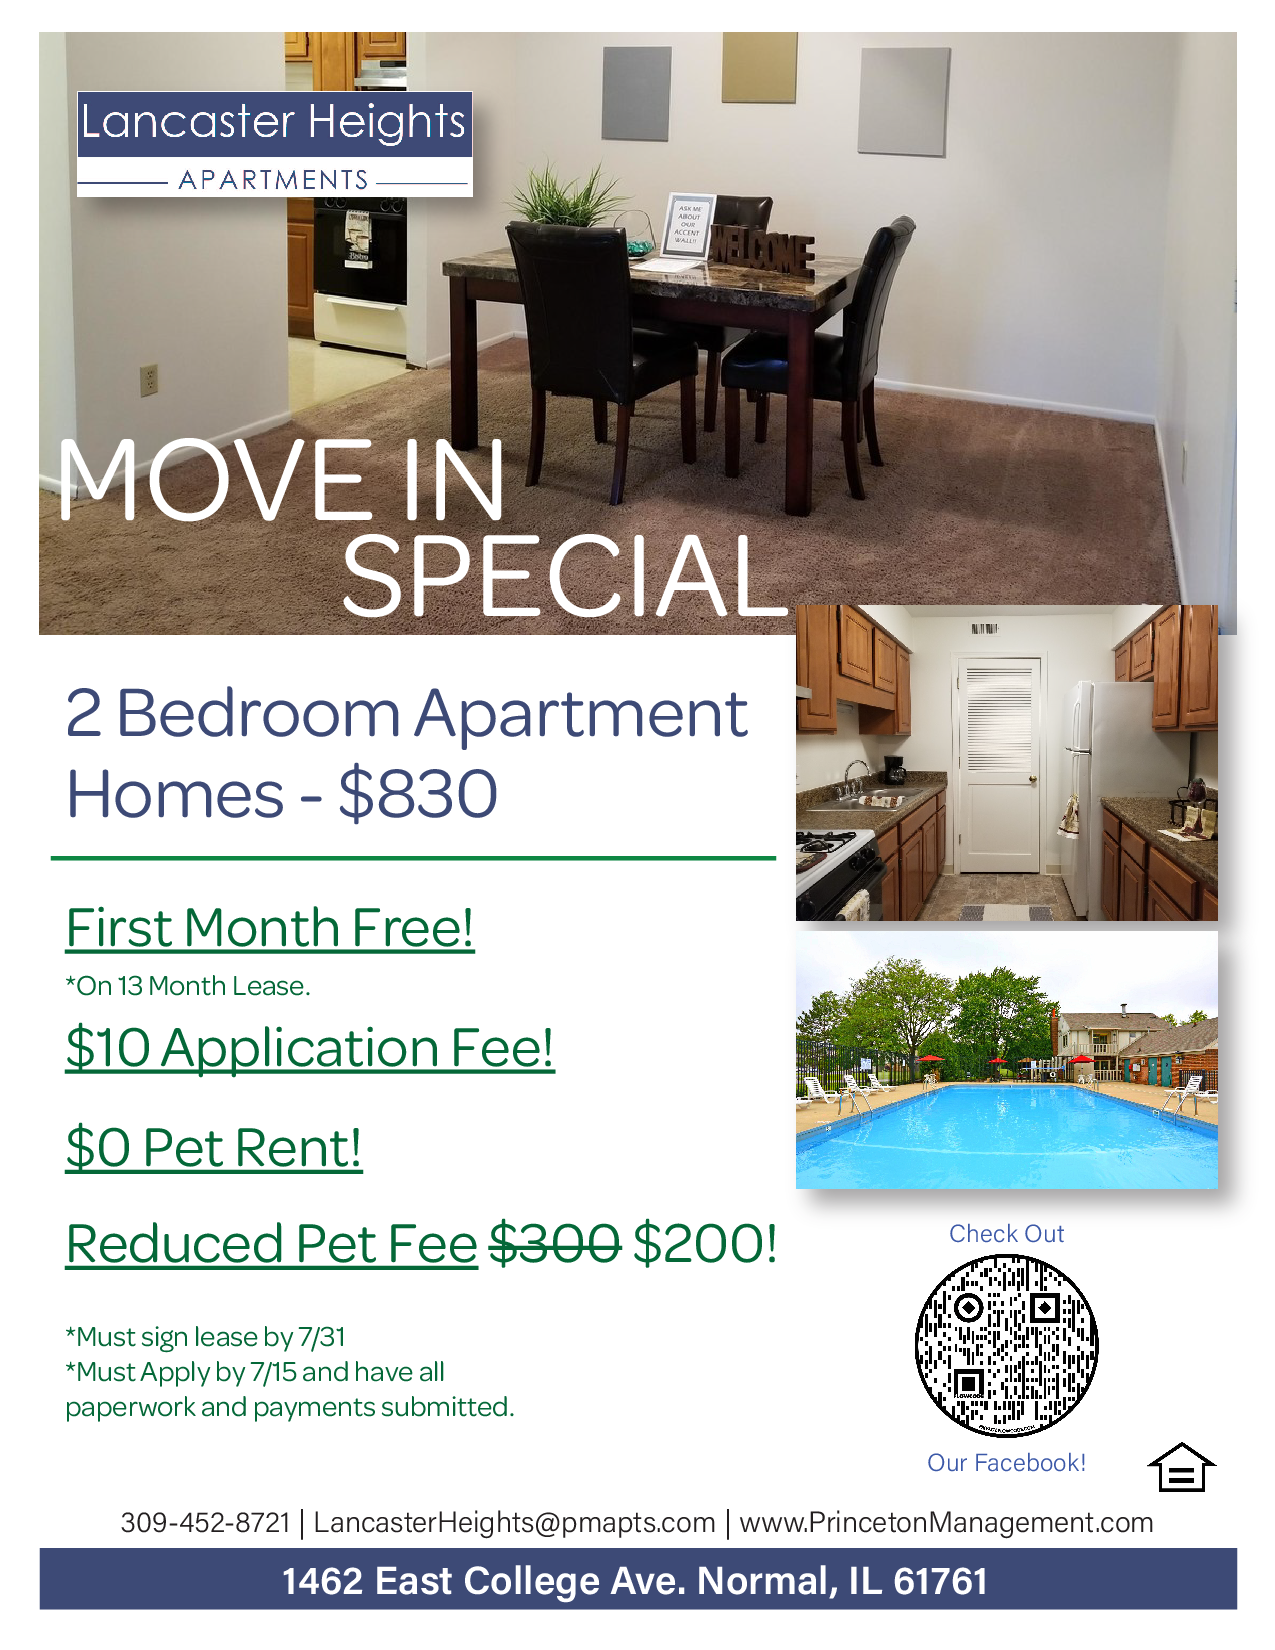 Apartments Near ISU Lancaster Heights for Illinois State University Students in Normal, IL